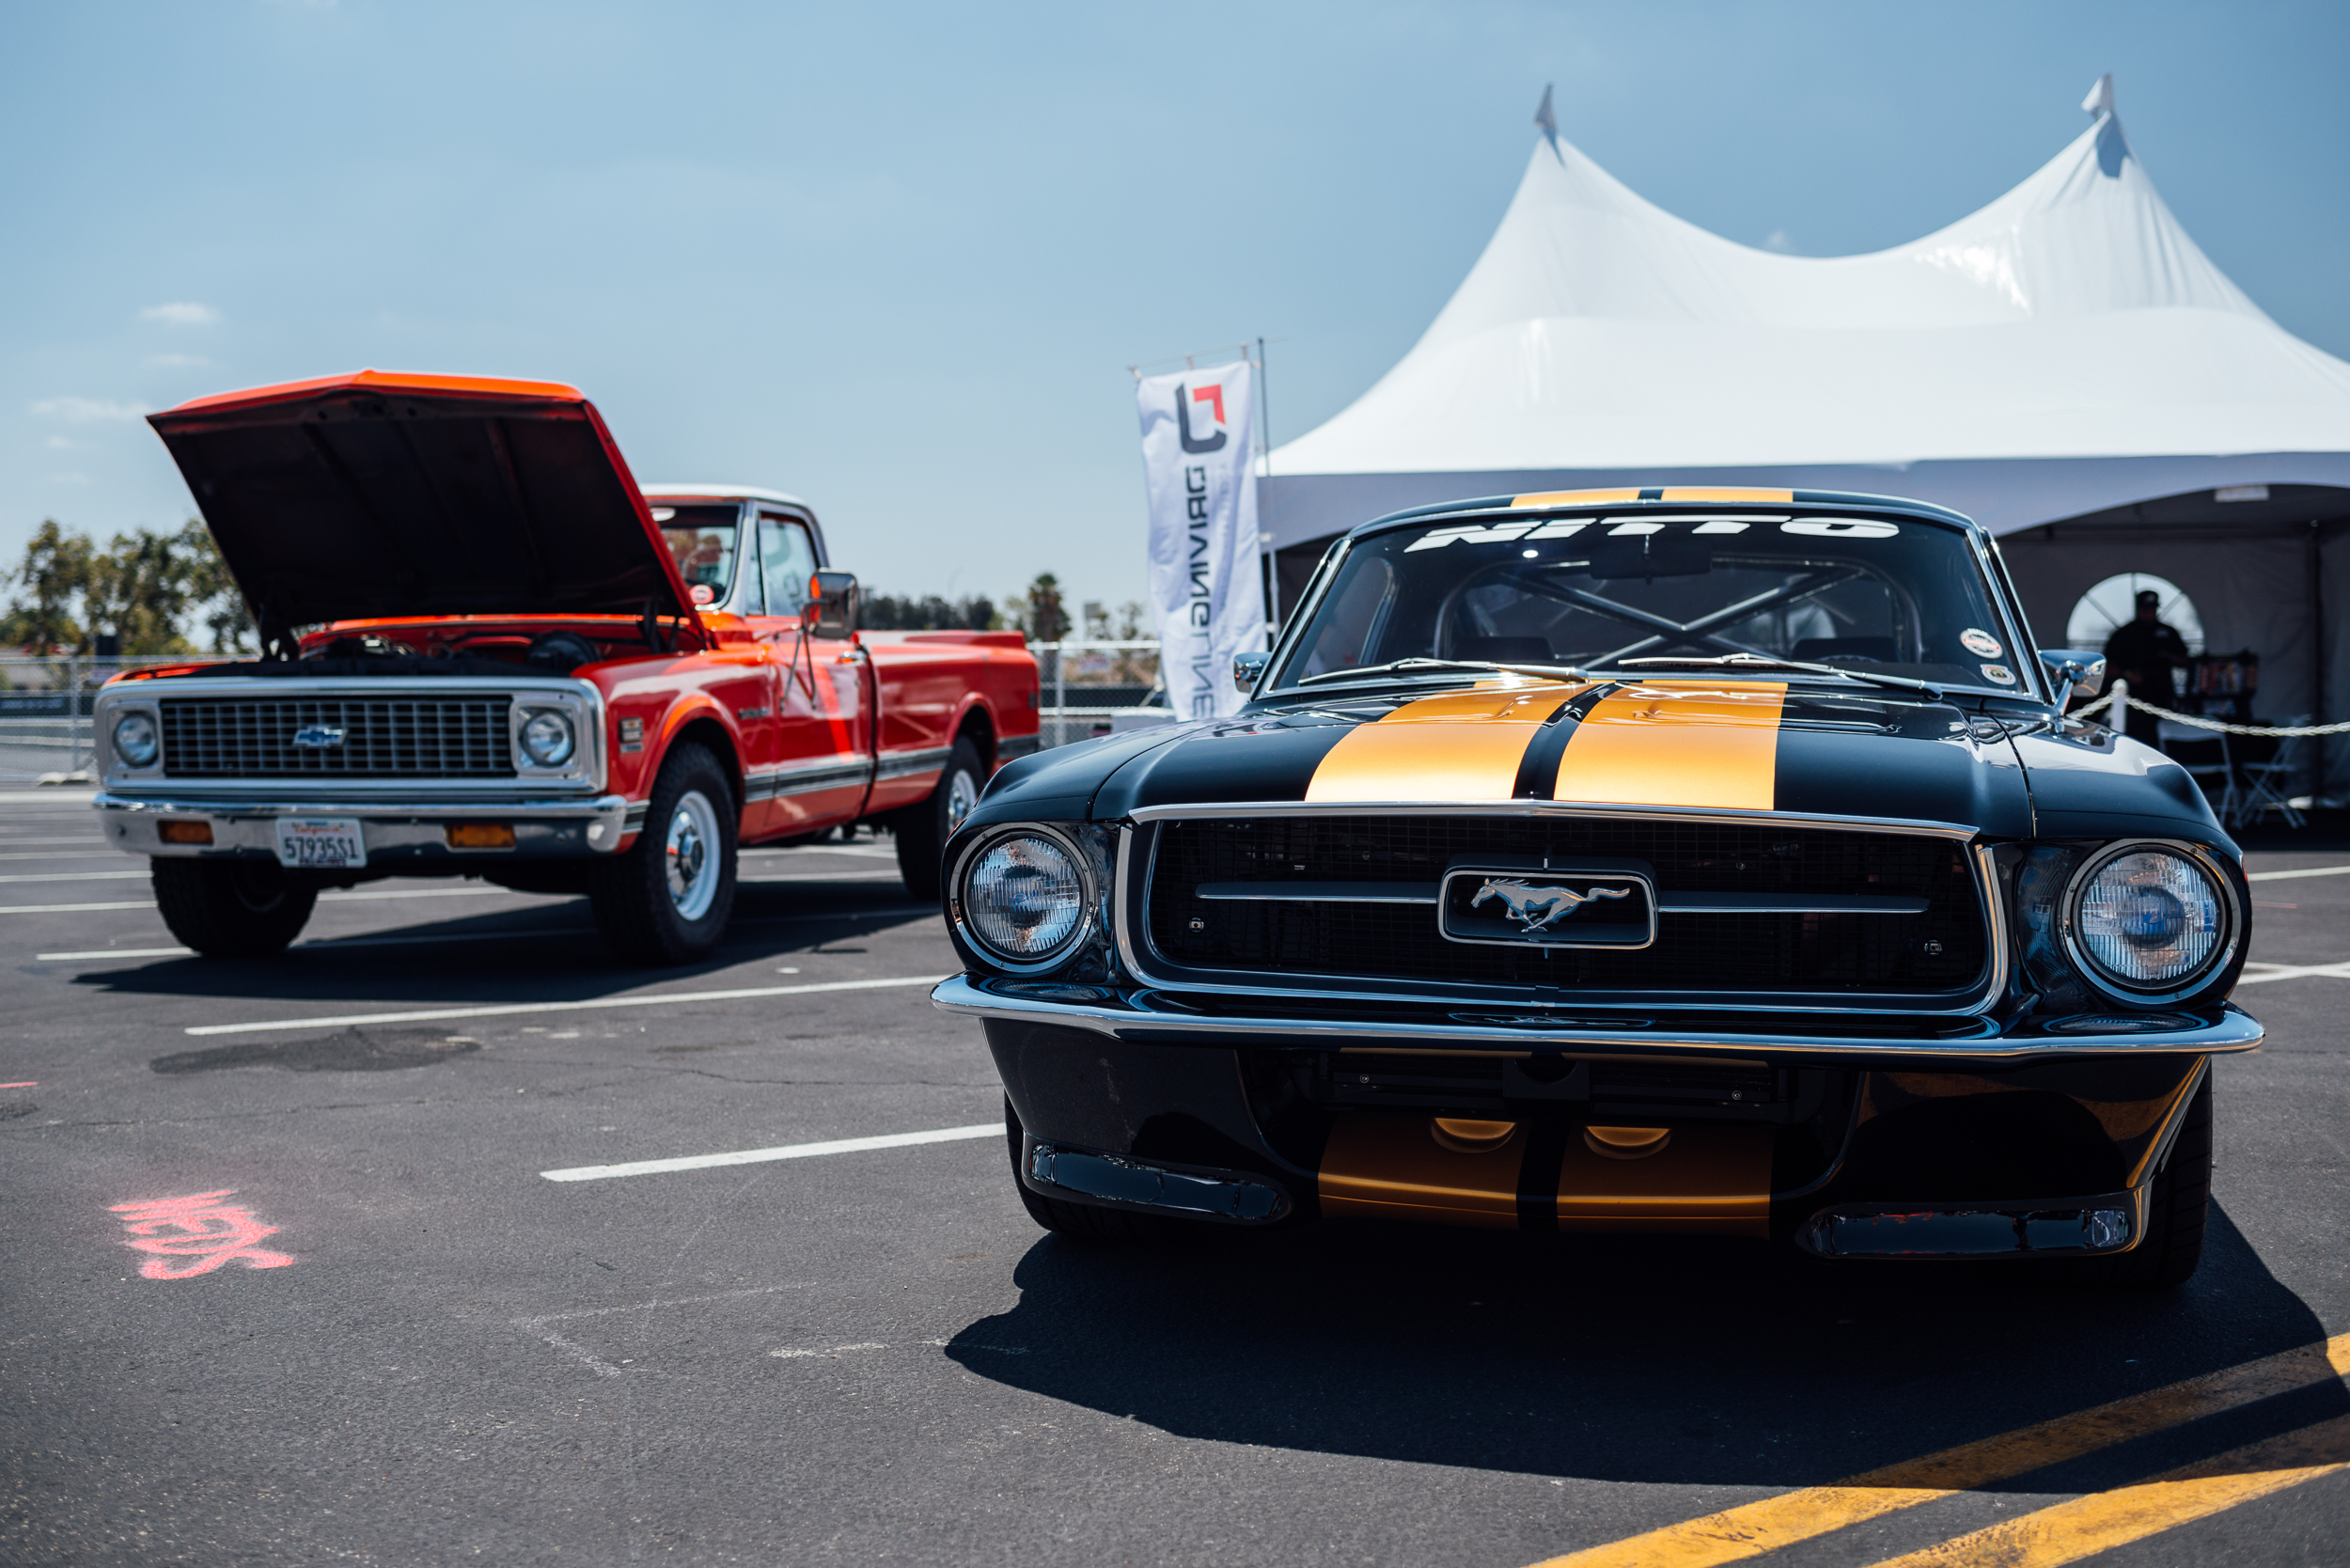 AED_CarShow-8.jpg